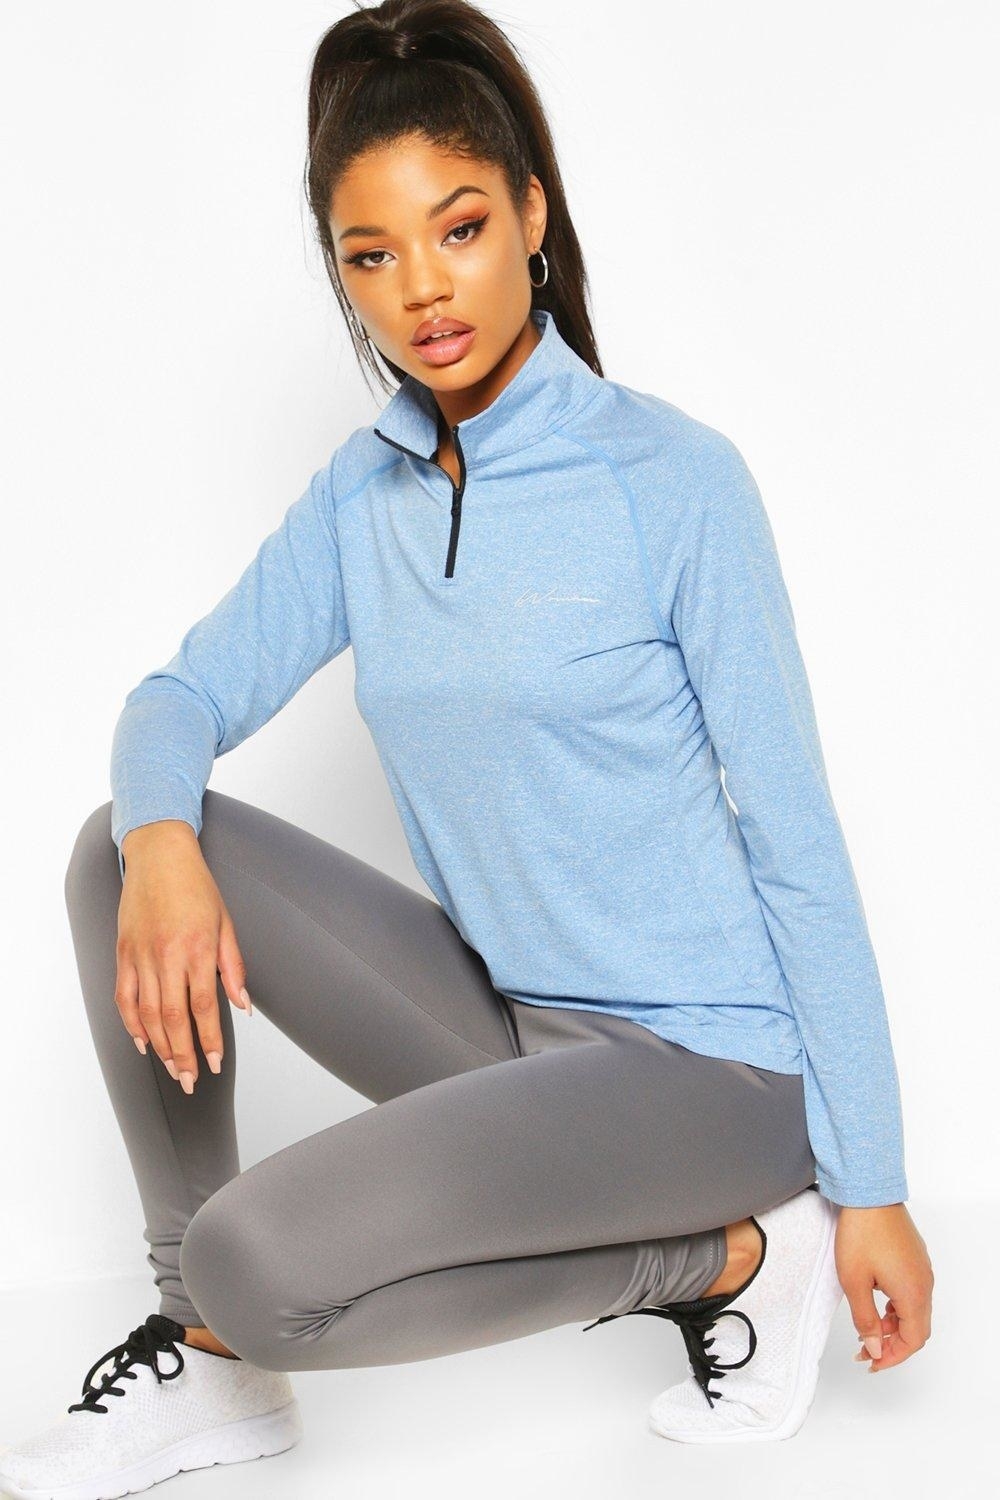 a model wearing the blue sweater with a funnel neck